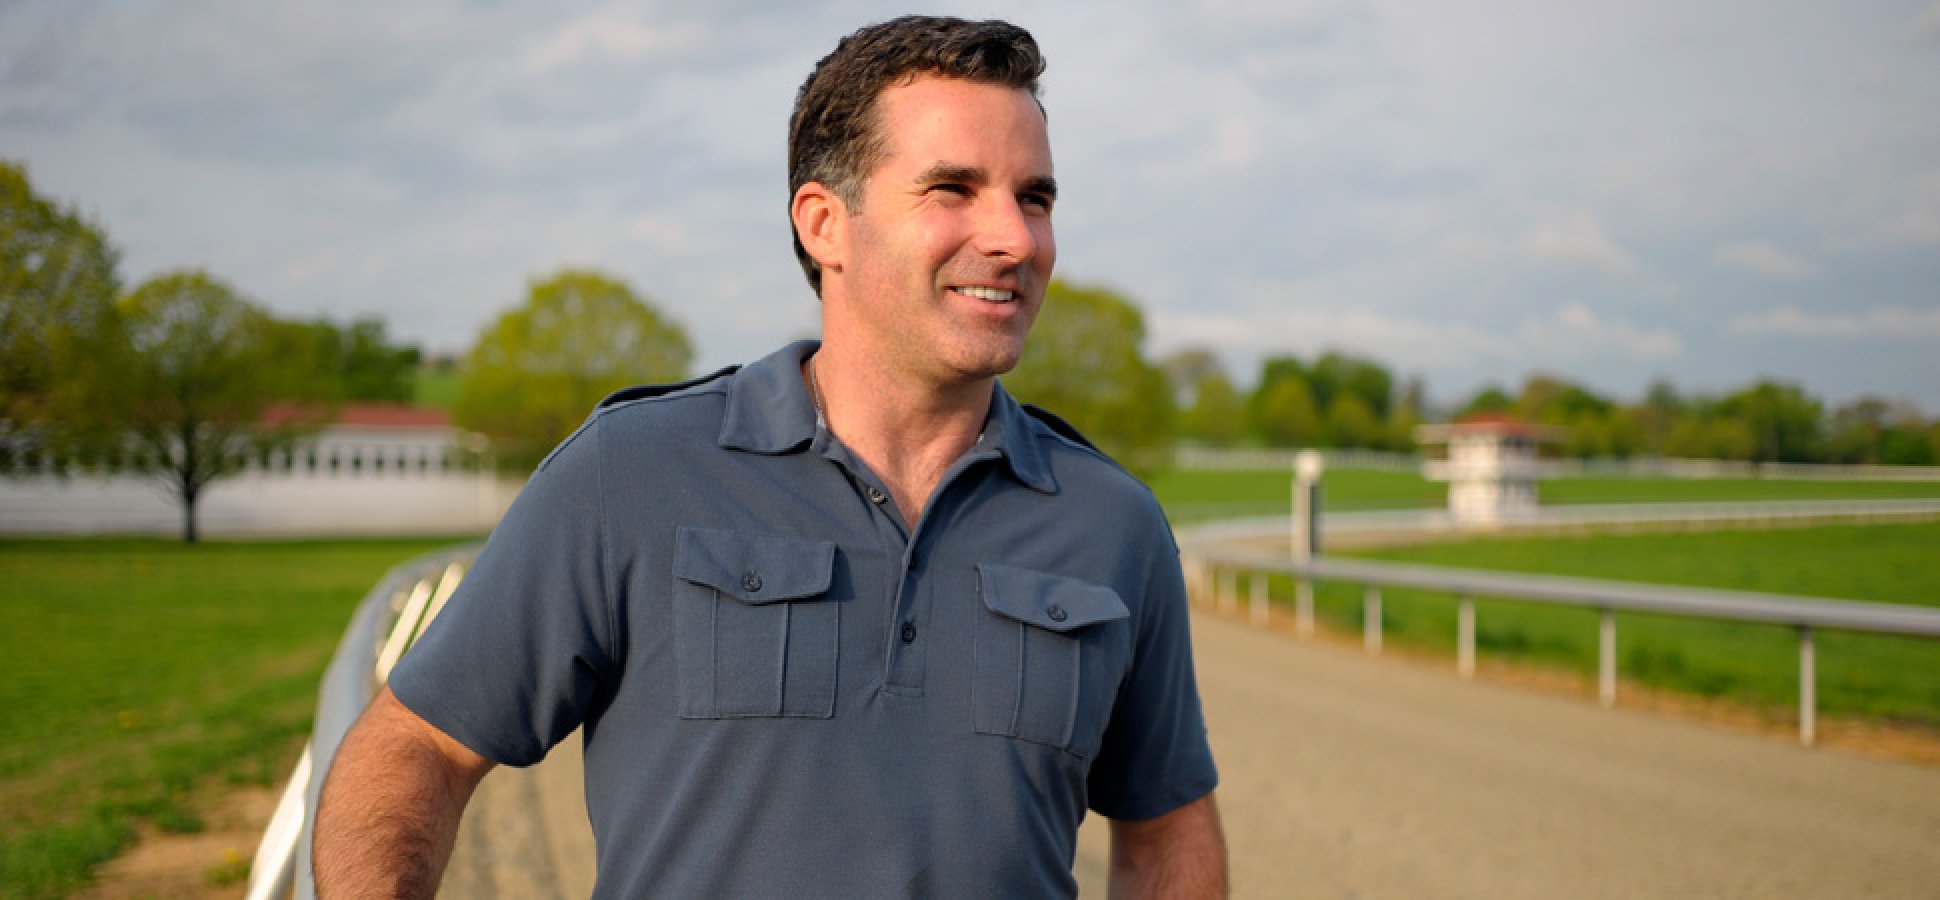 kevin-plank-under-armour_38525